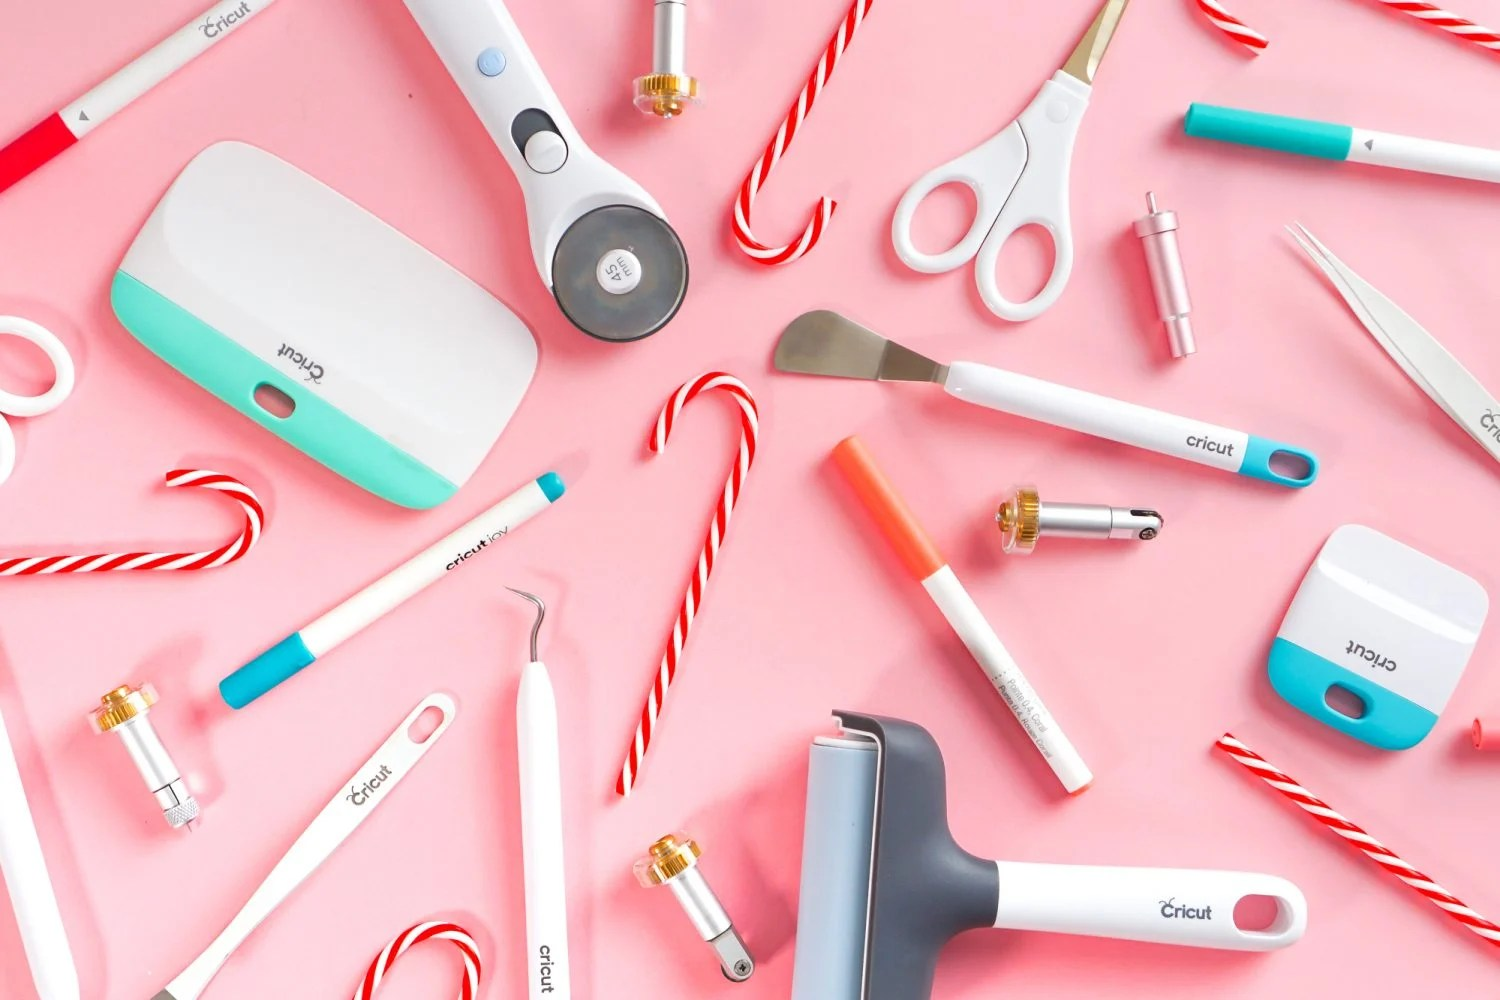 Cricut accessories and candy canes on a pink background